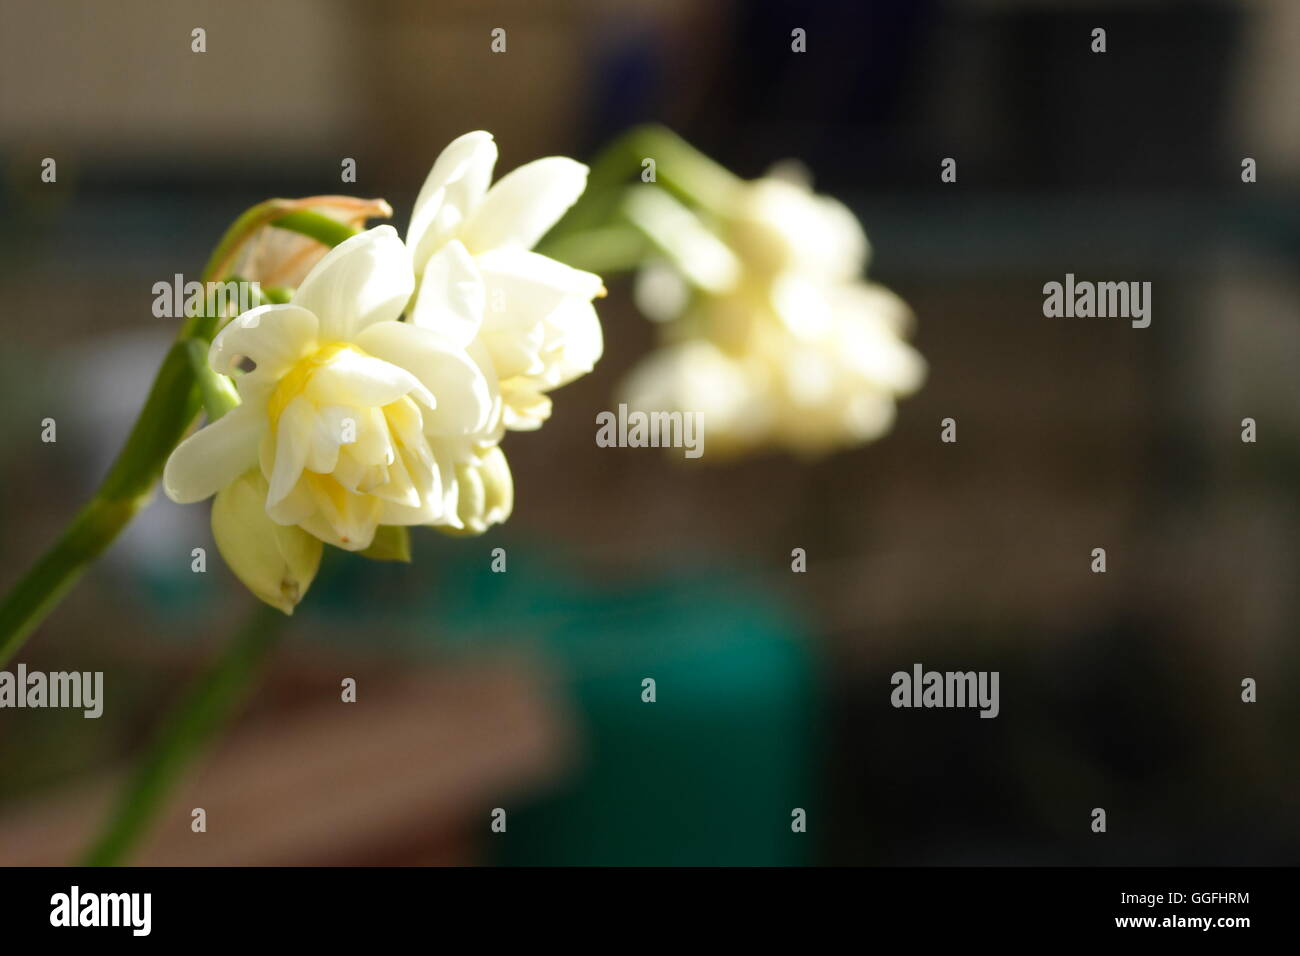 Jonquils narcissus blooming Stock Photo